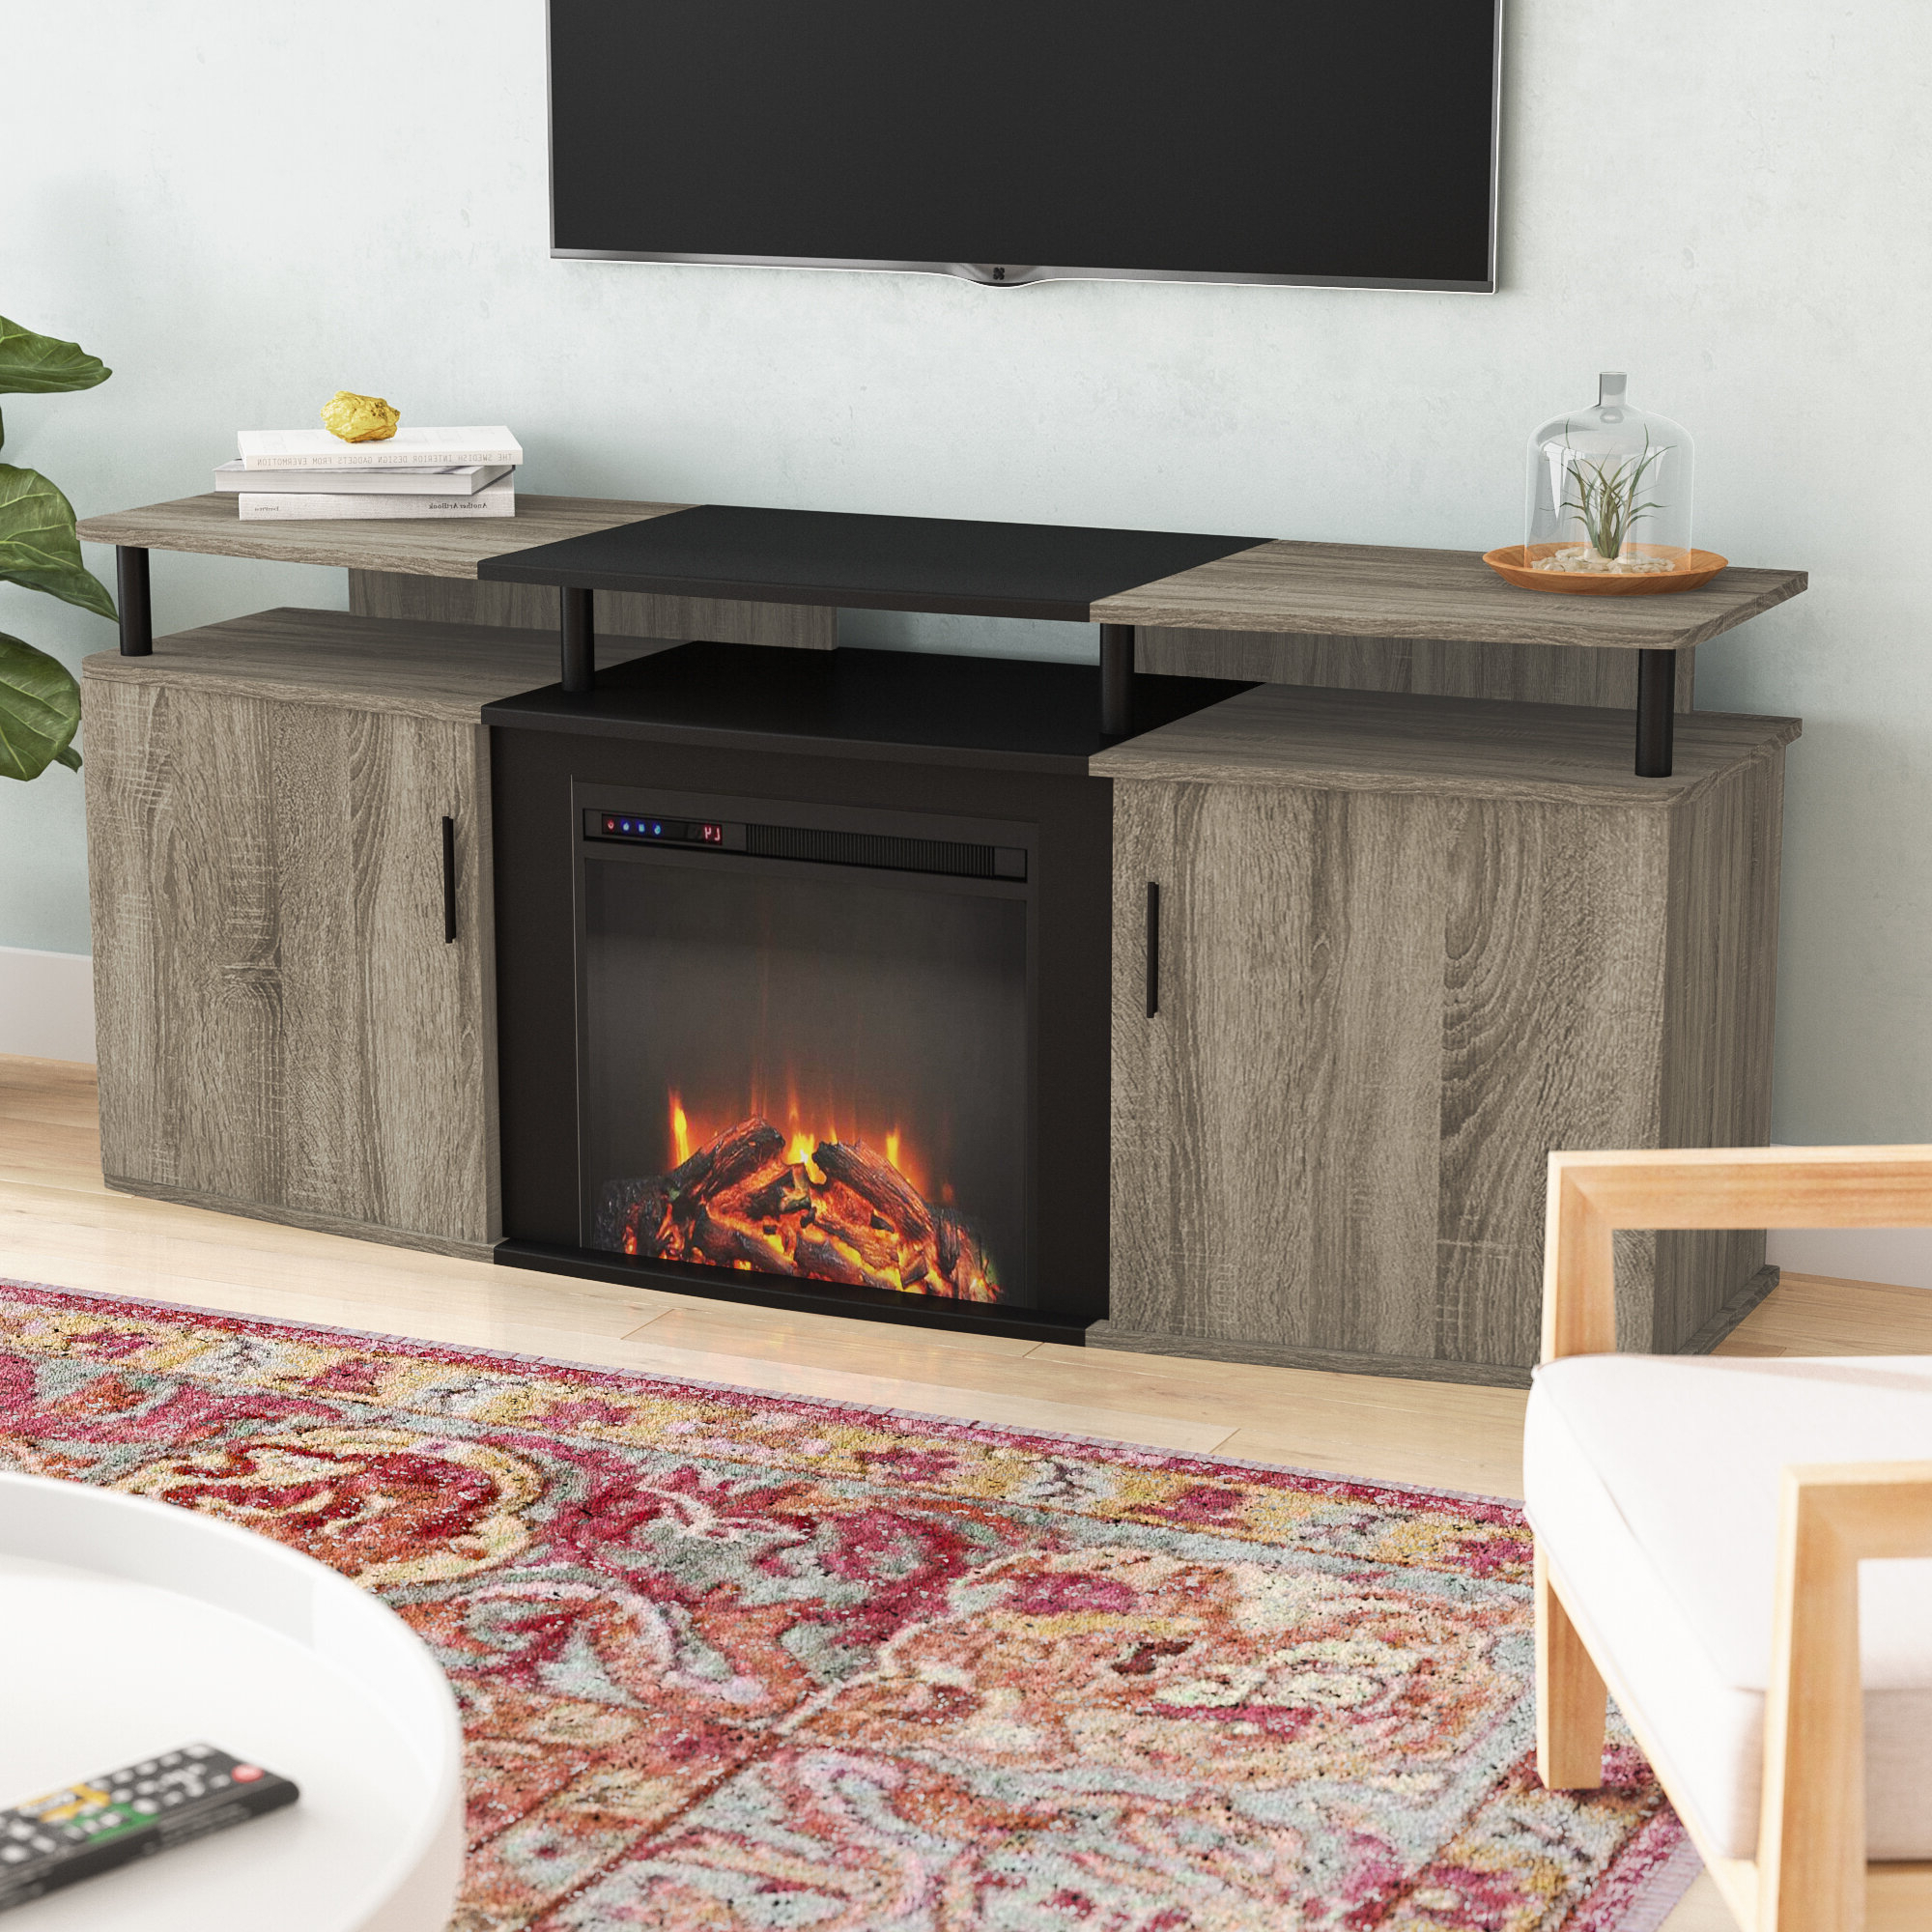 """Mainor Tv Stands For Tvs Up To 70"""" For Most Popular Fireplace Tv Stand 70 Inch – Ideas On Foter (View 17 of 25)"""